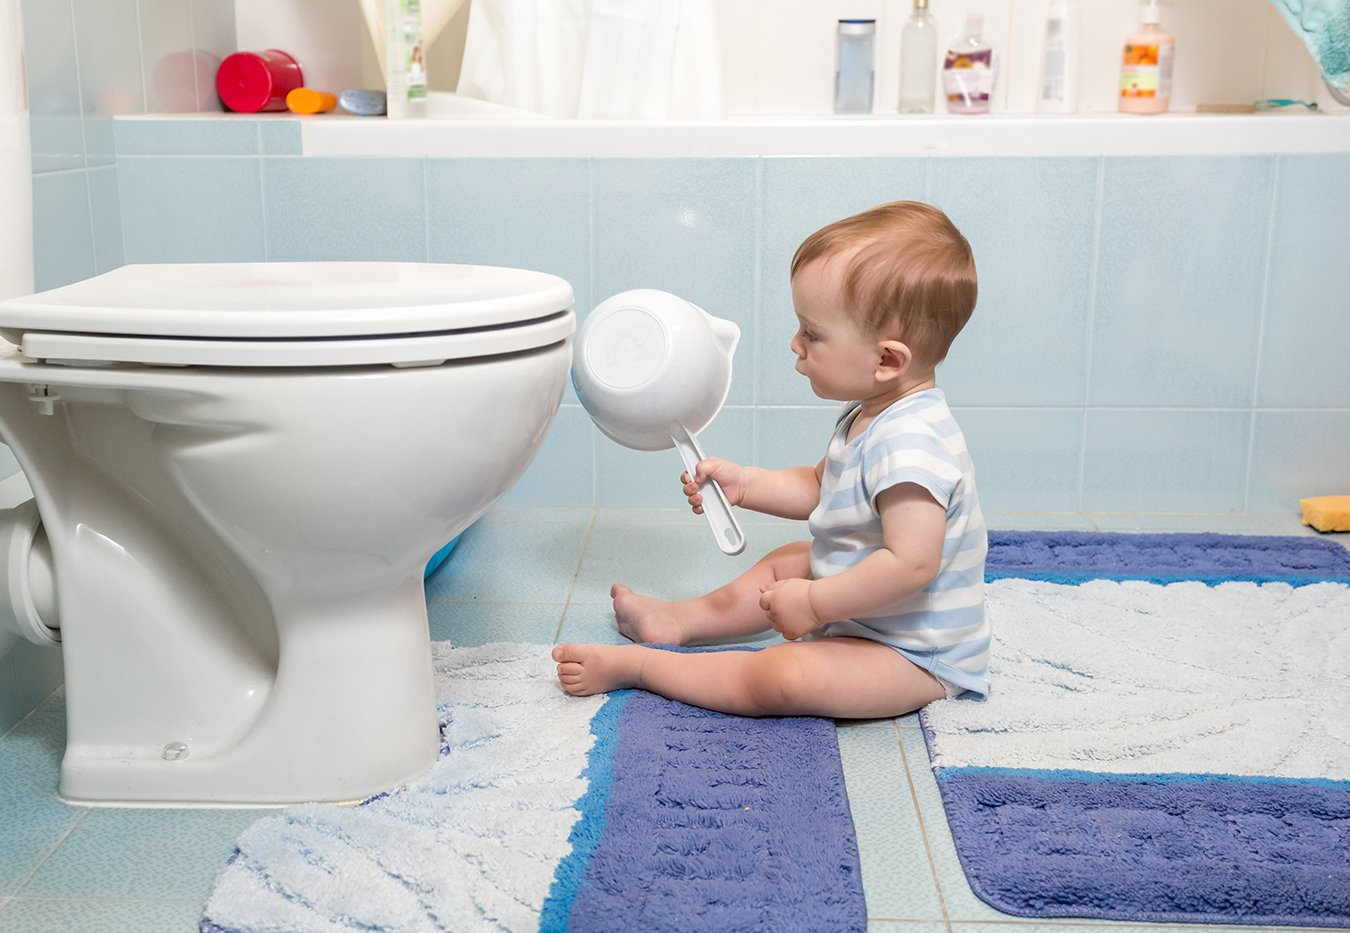 New Toilet Training Items!